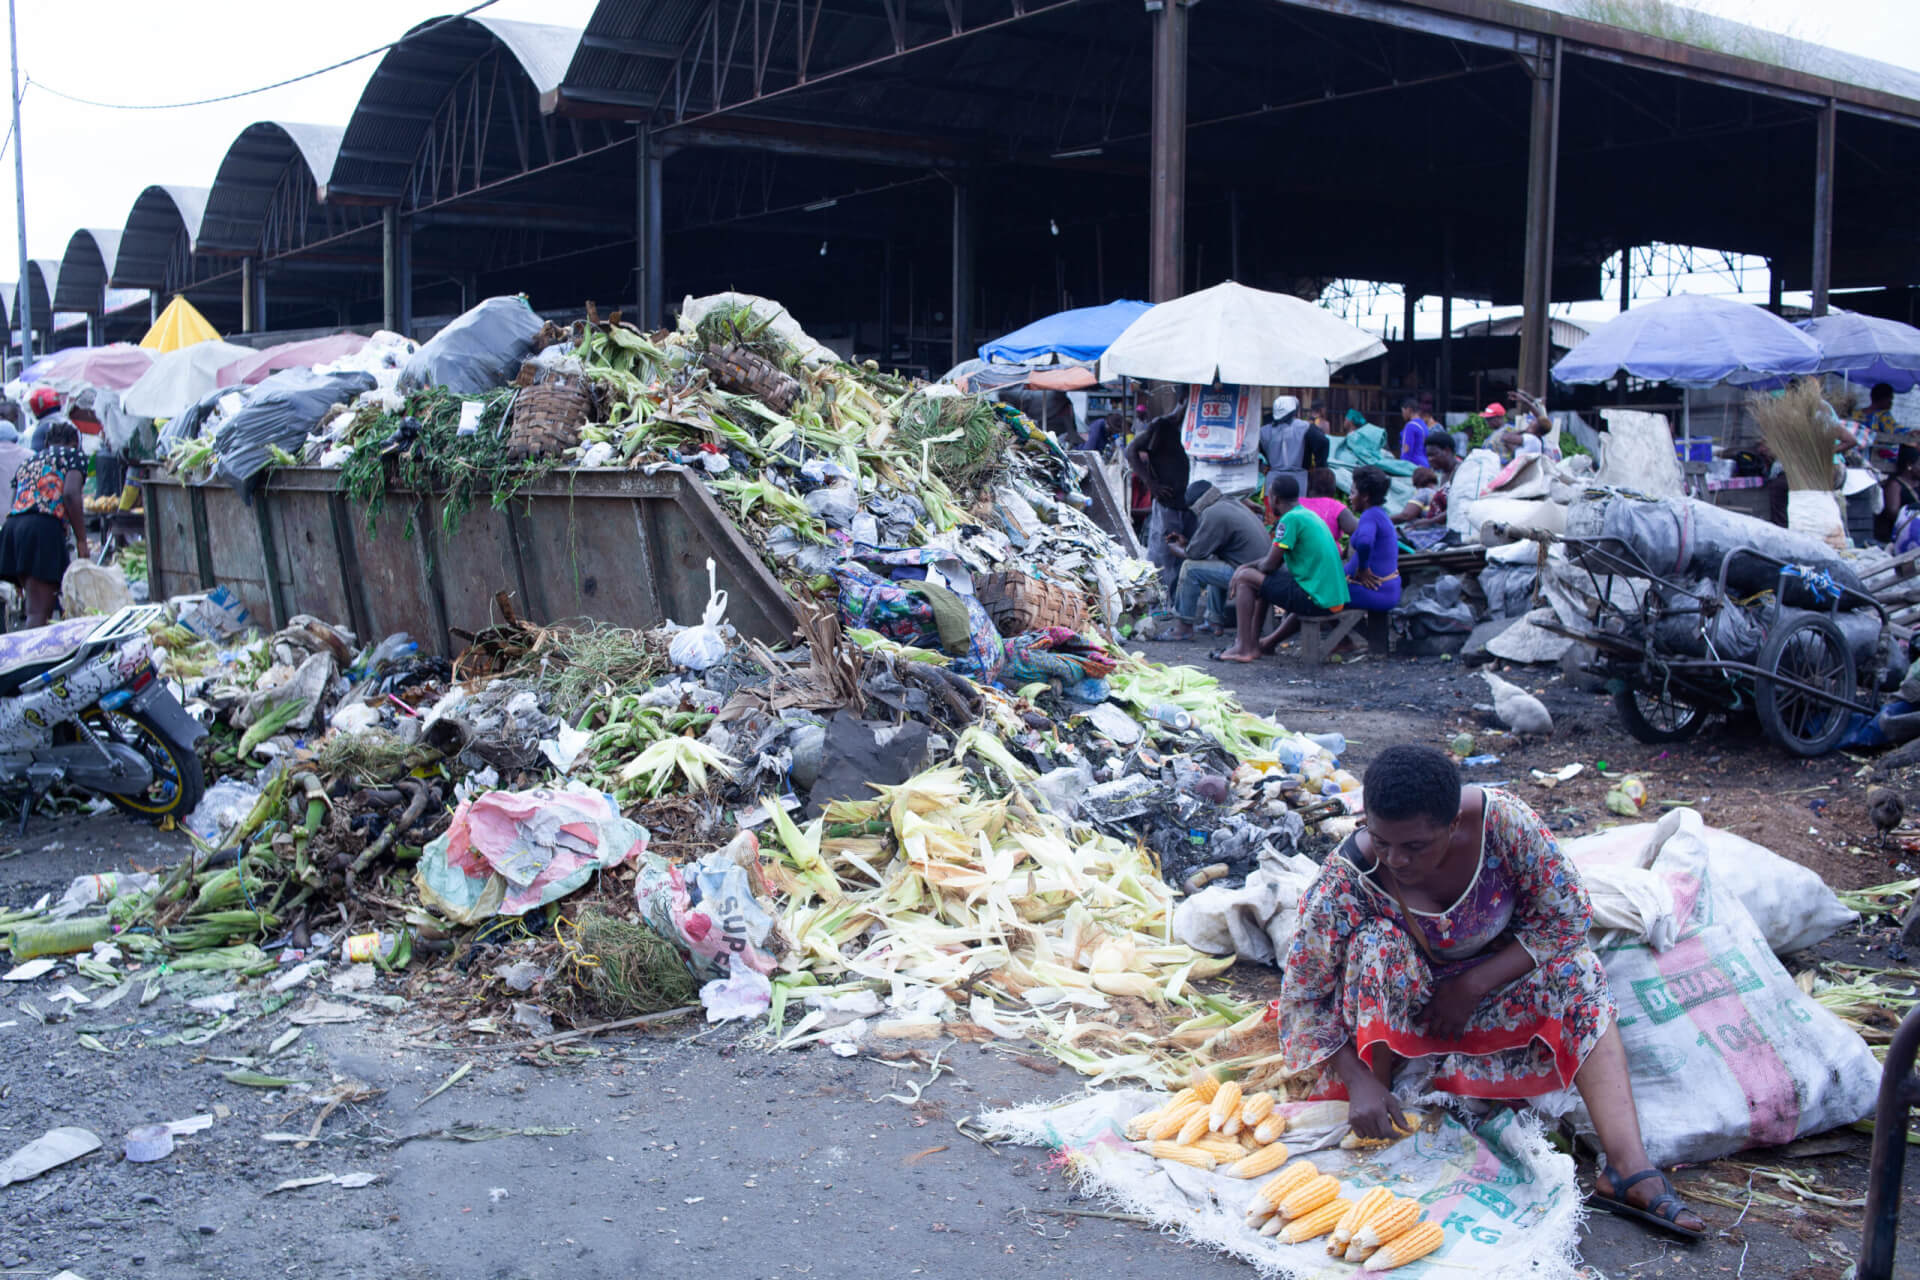 People sell food next to overspilling mixed waste containers